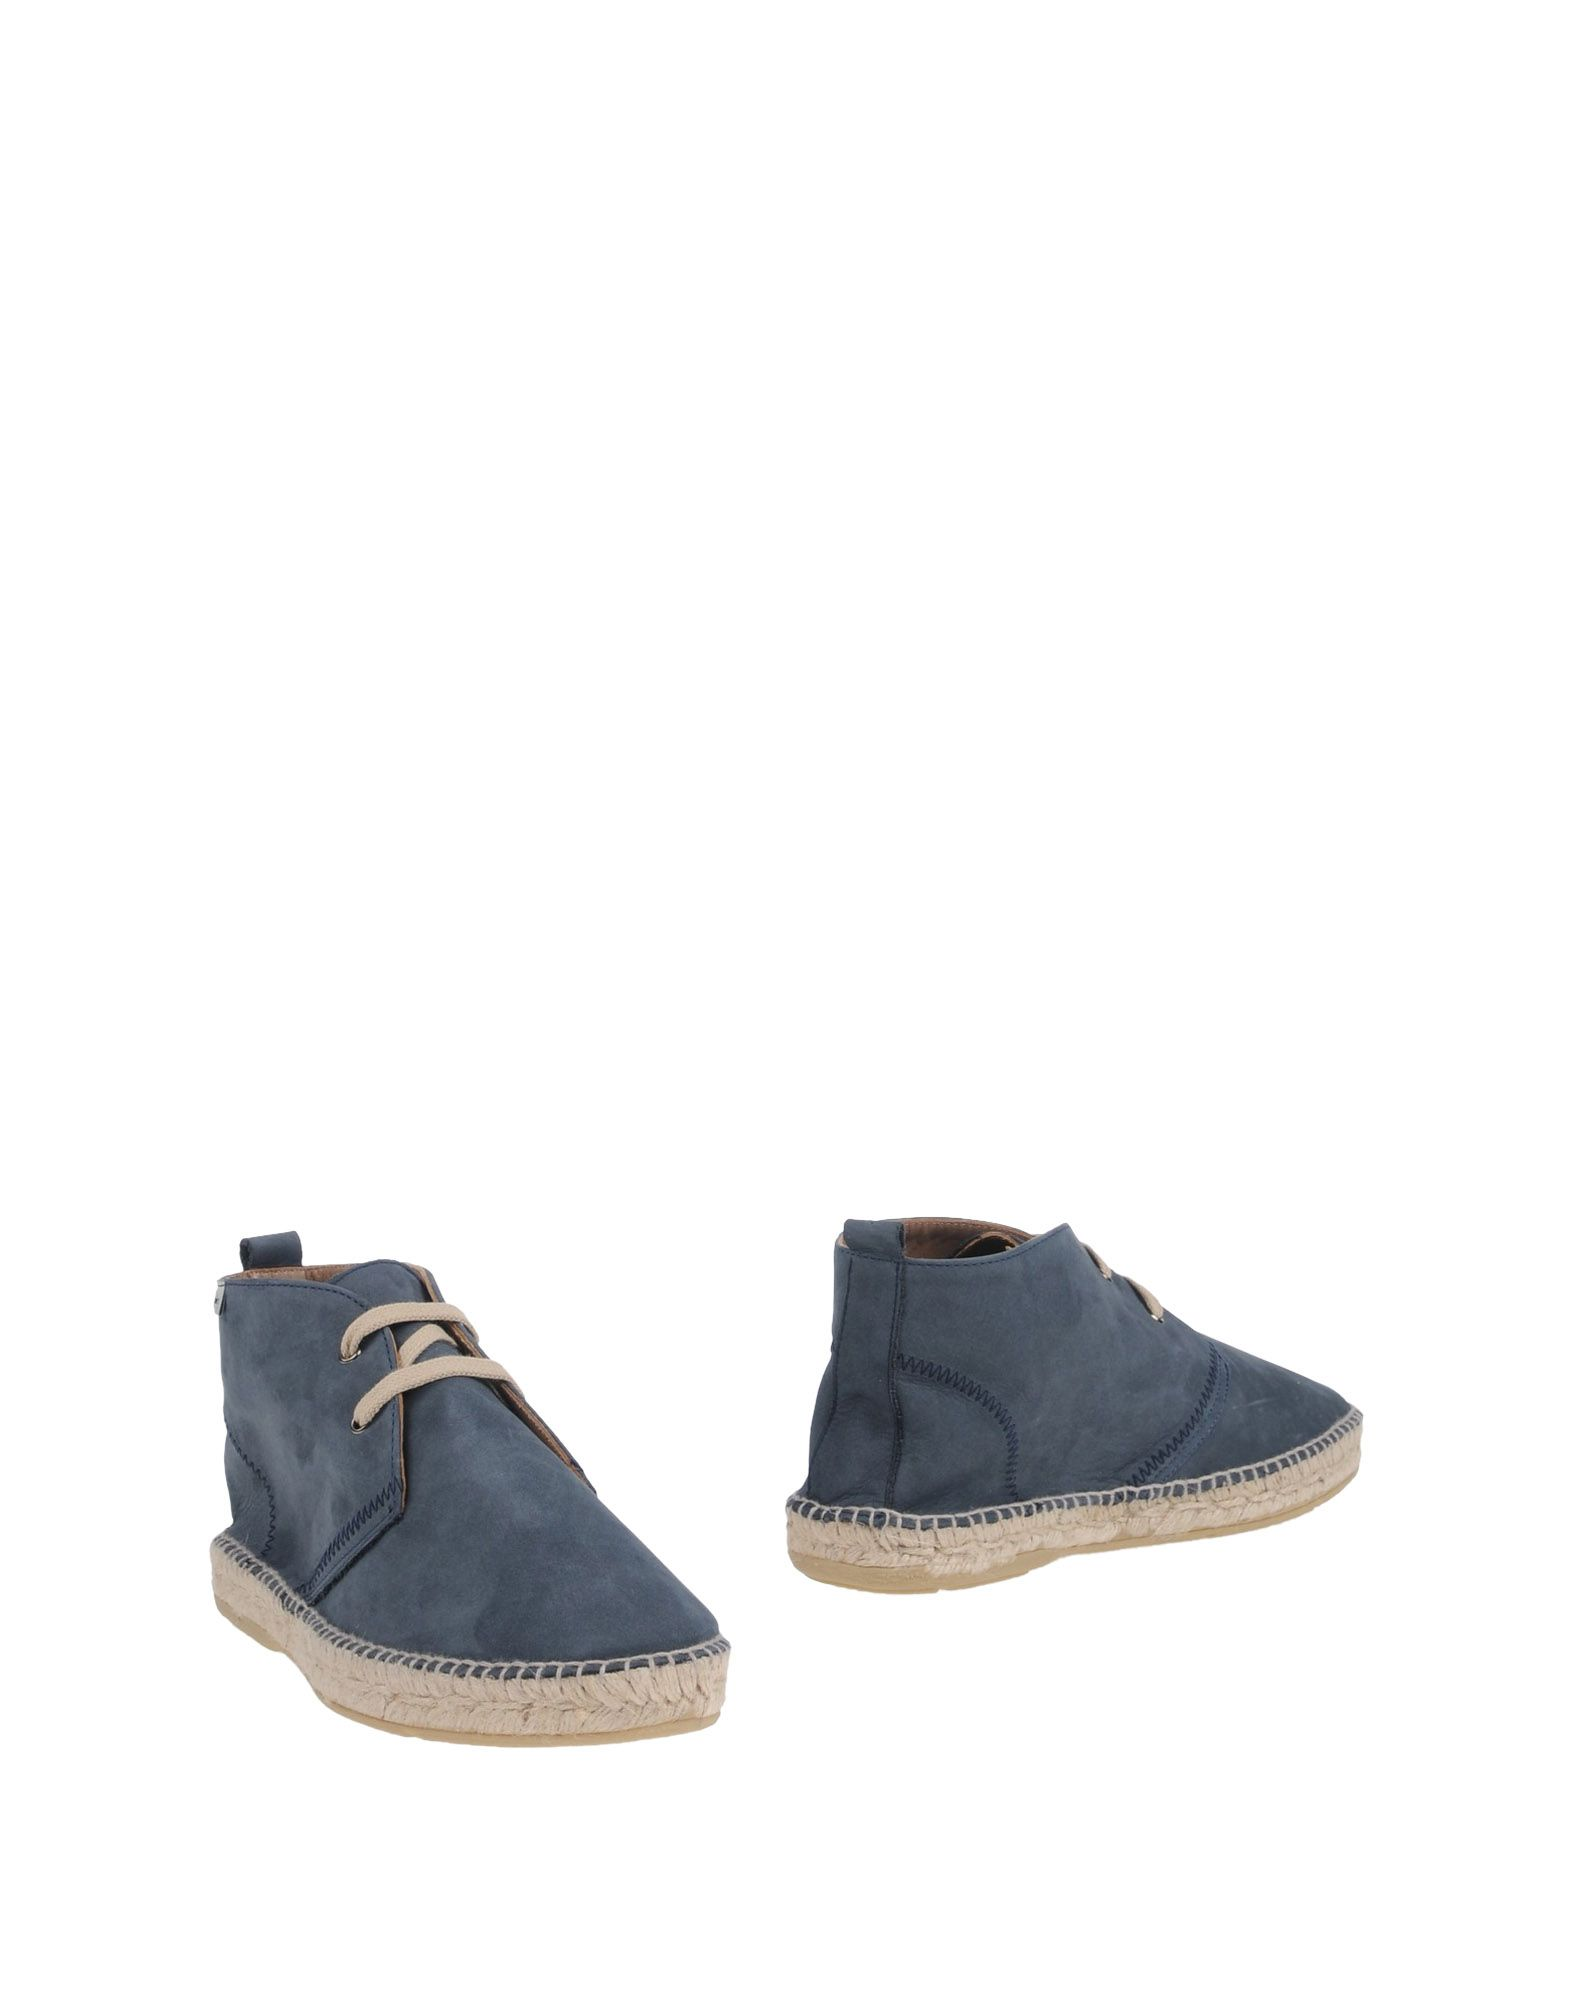 ESPADRILLES Boots in Slate Blue